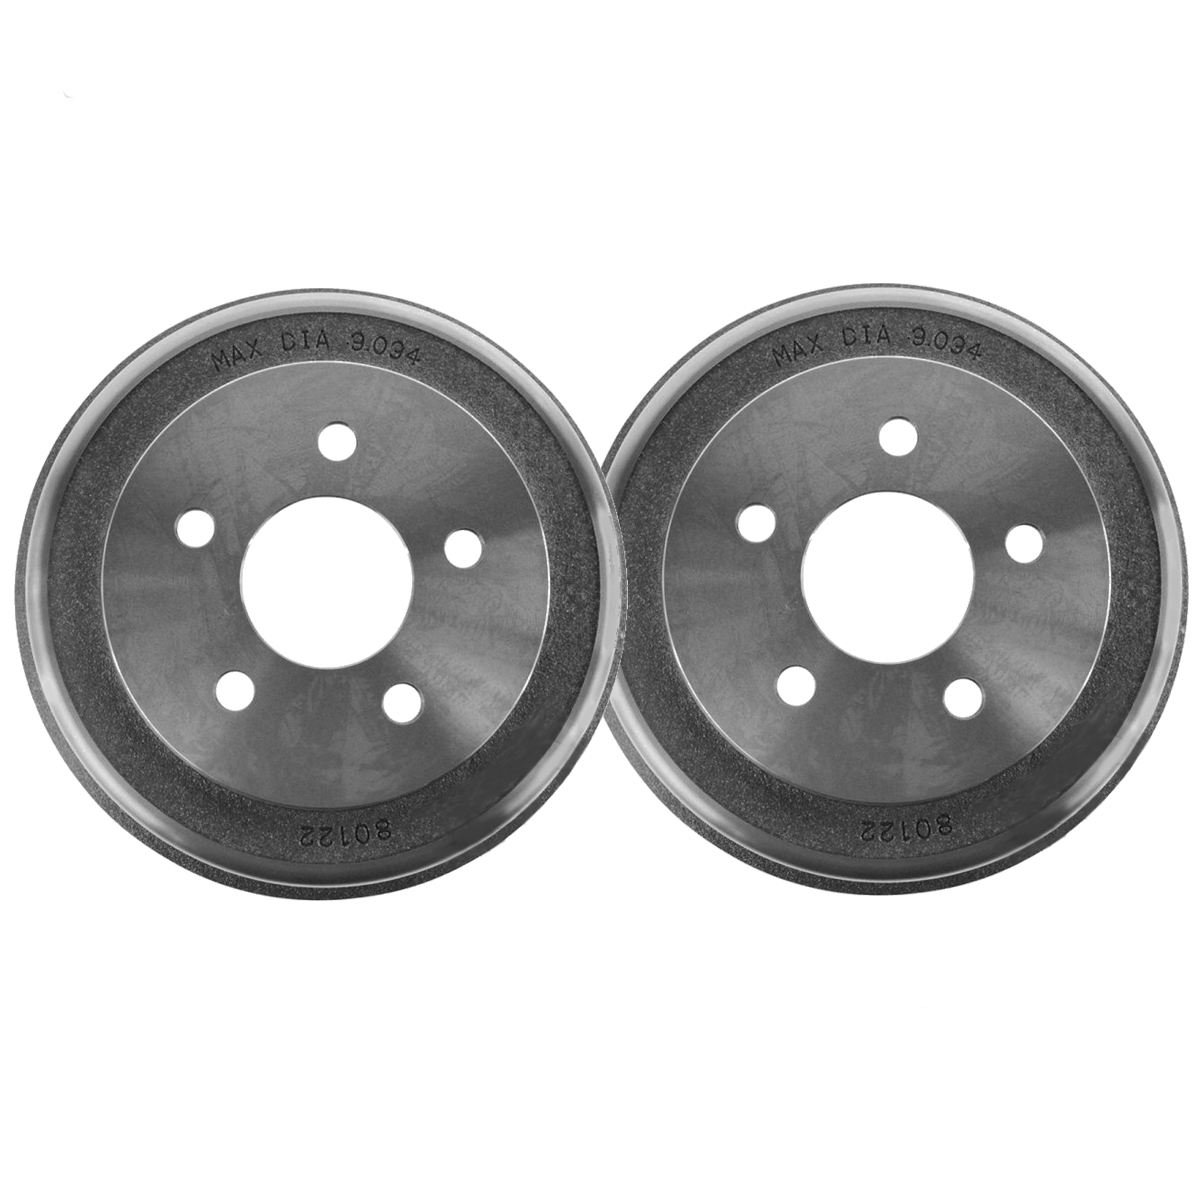 Pair (2) REAR Brake Drum Set for 5-Lug Cobalt HHR Malibu G5